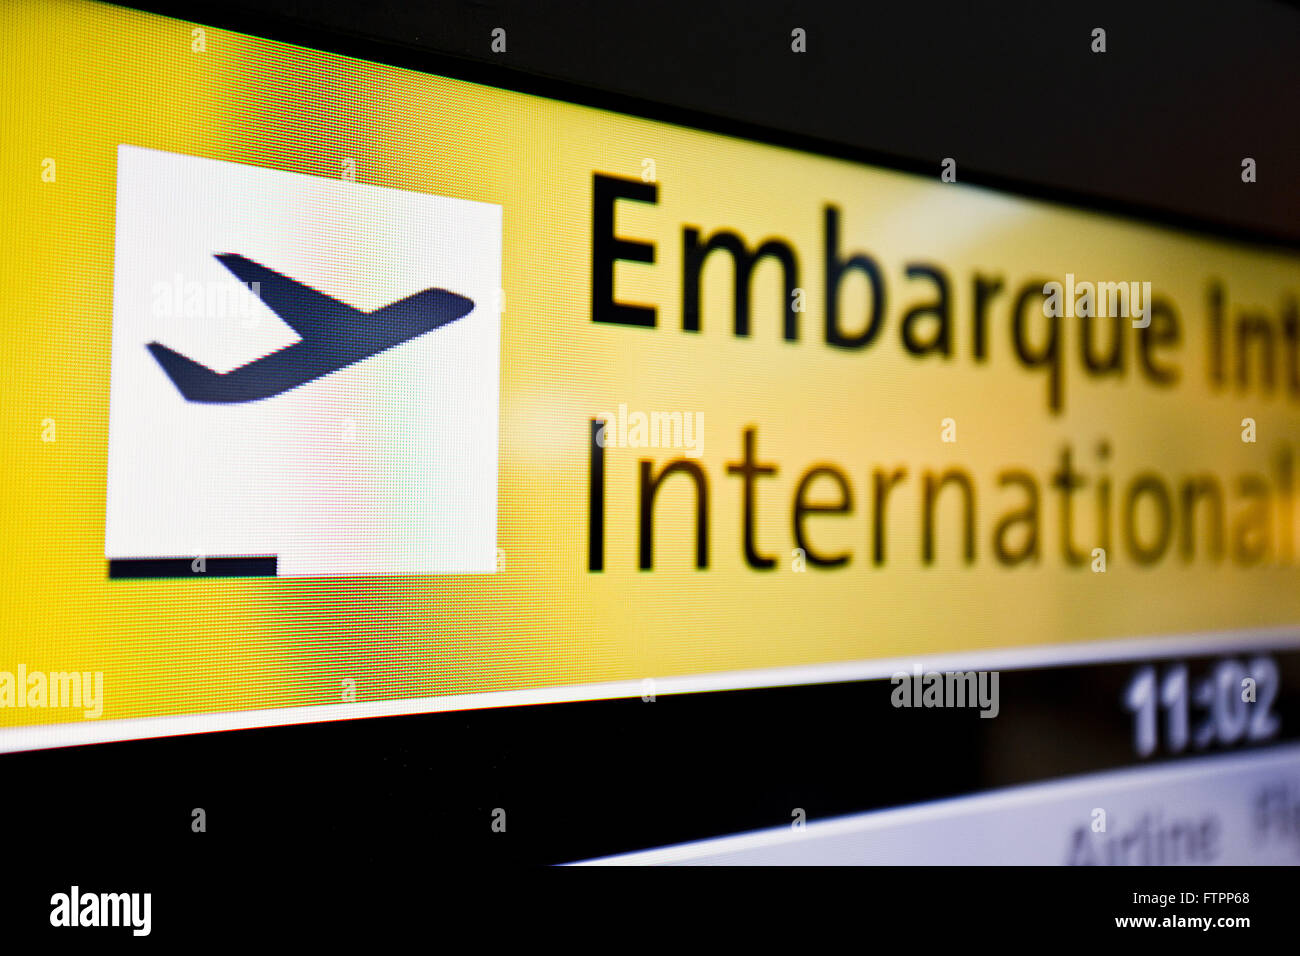 Panel informing schedule boarding flights from Sao Paulo / Guarulhos International Airport - Stock Image